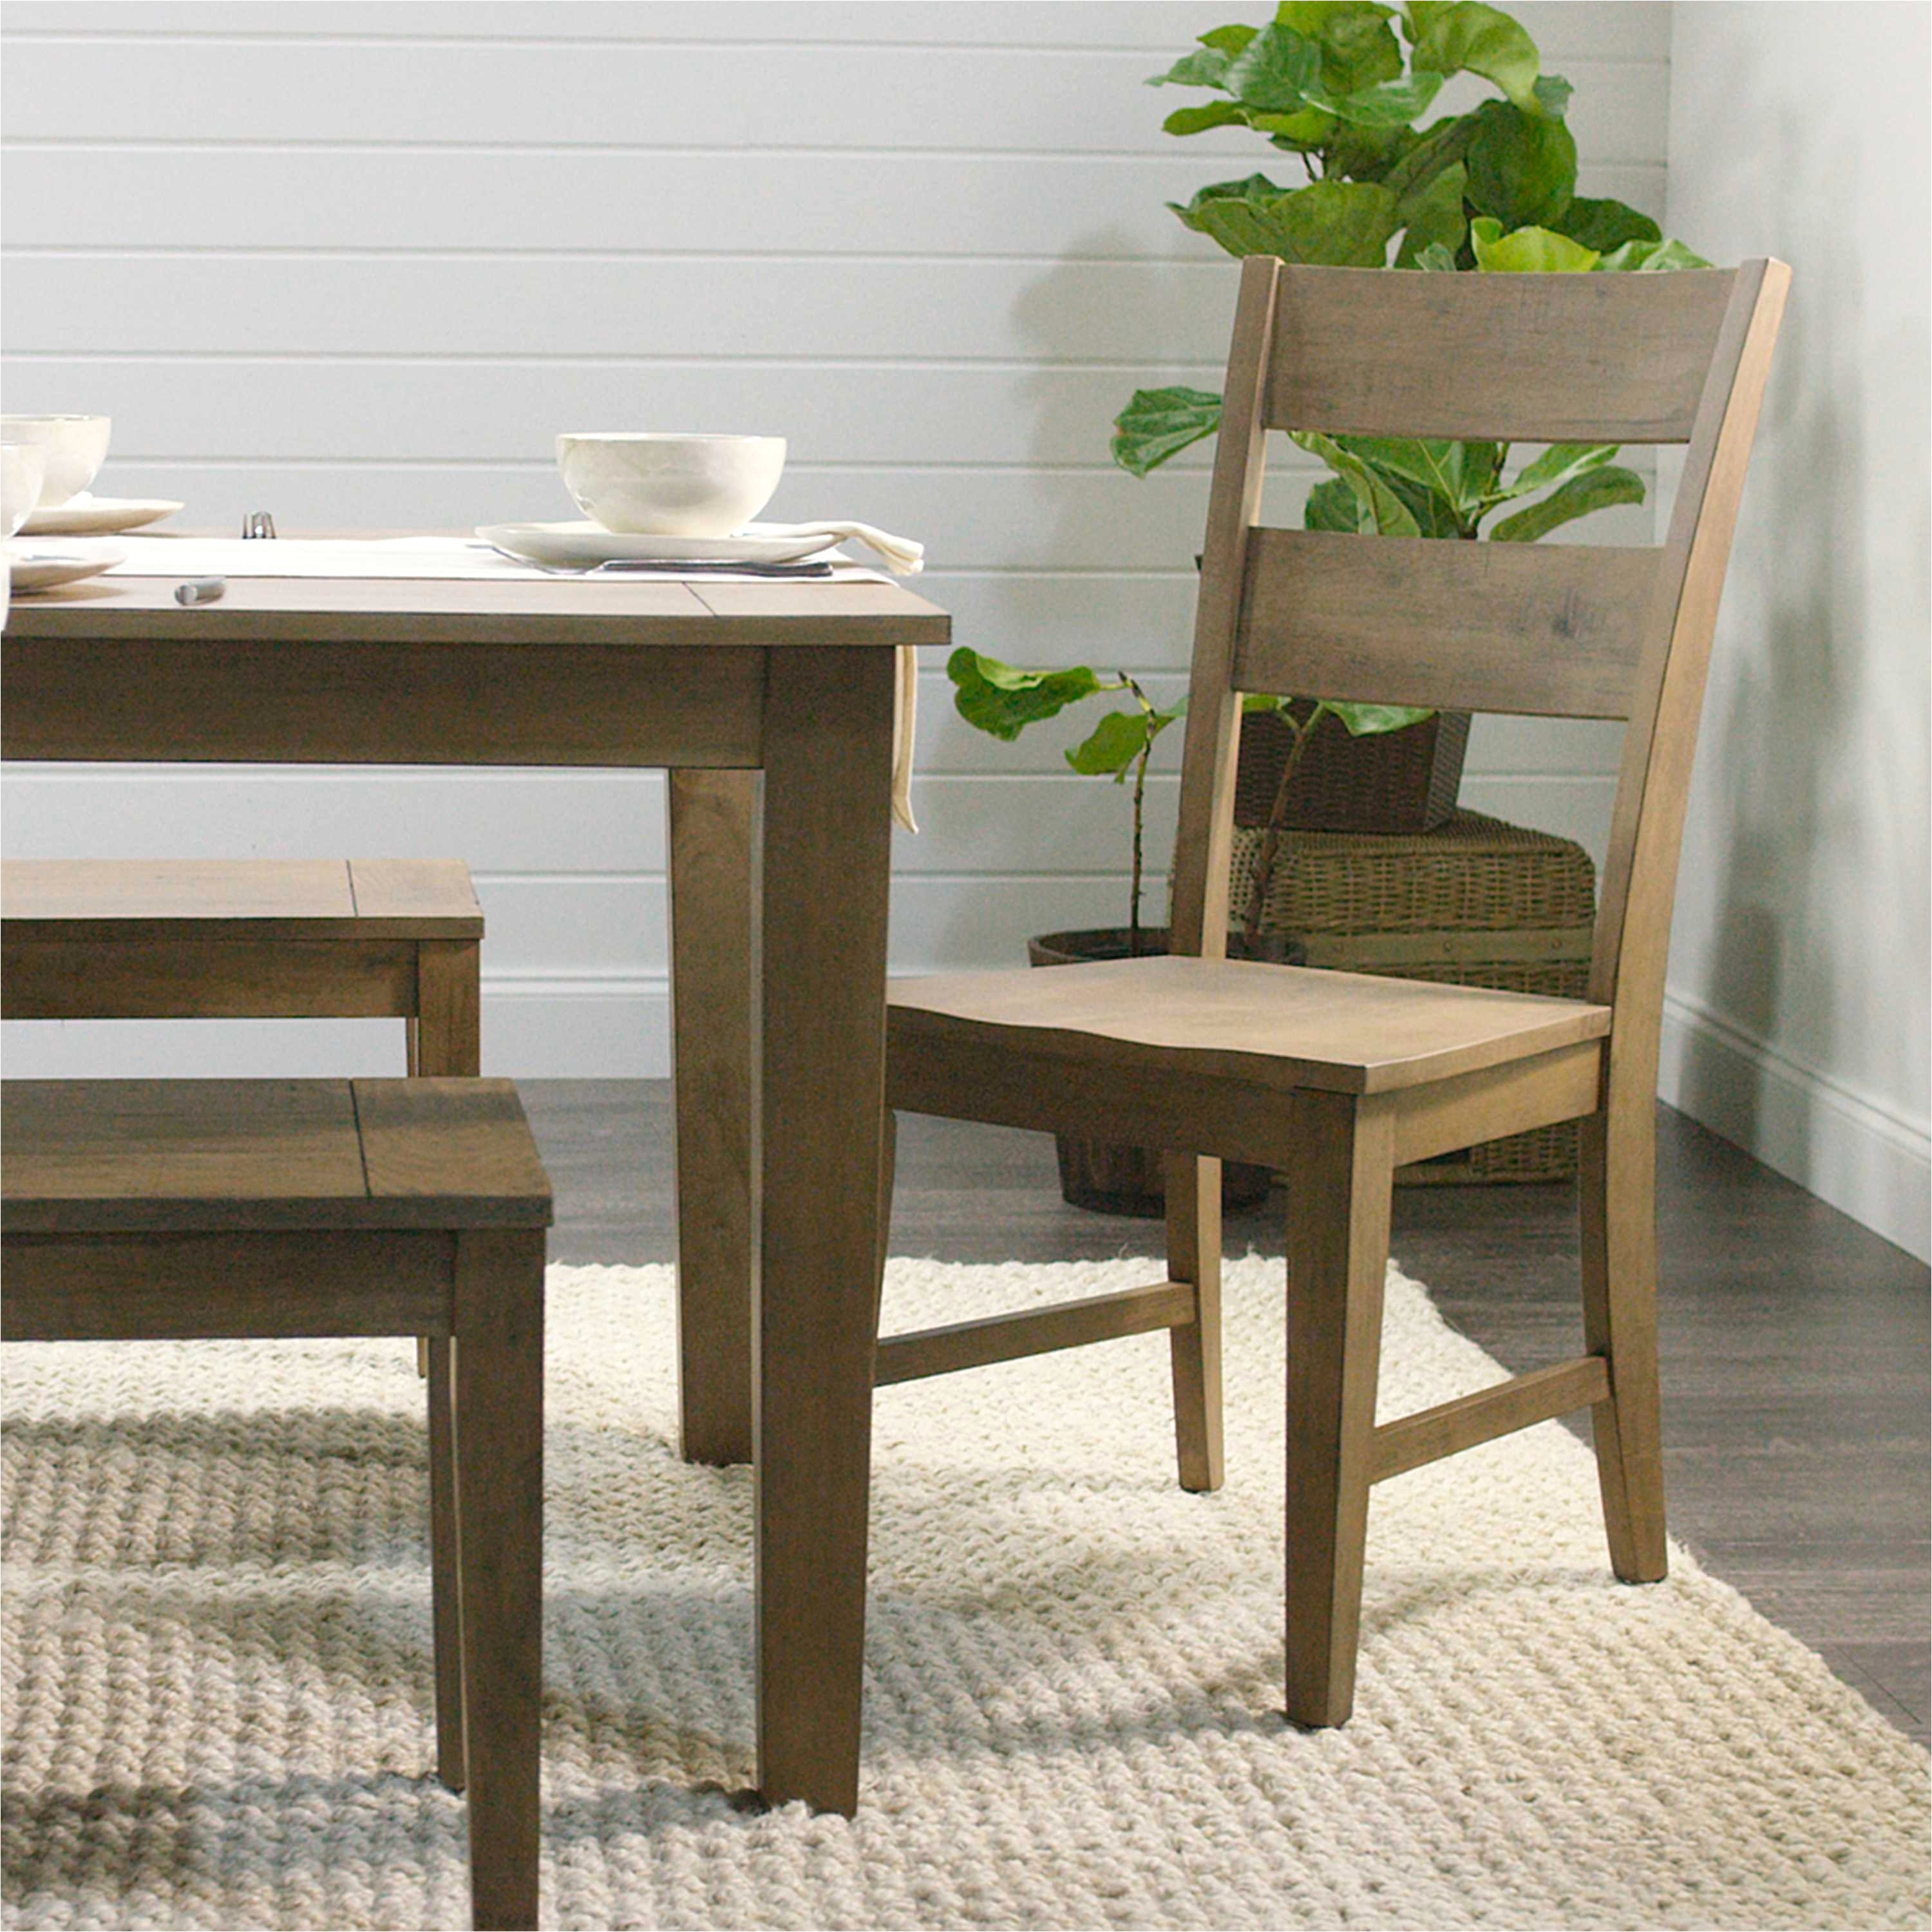 cost plus world market chairs tall desk with backs adirondack review patio maribo intelligentsolutions co